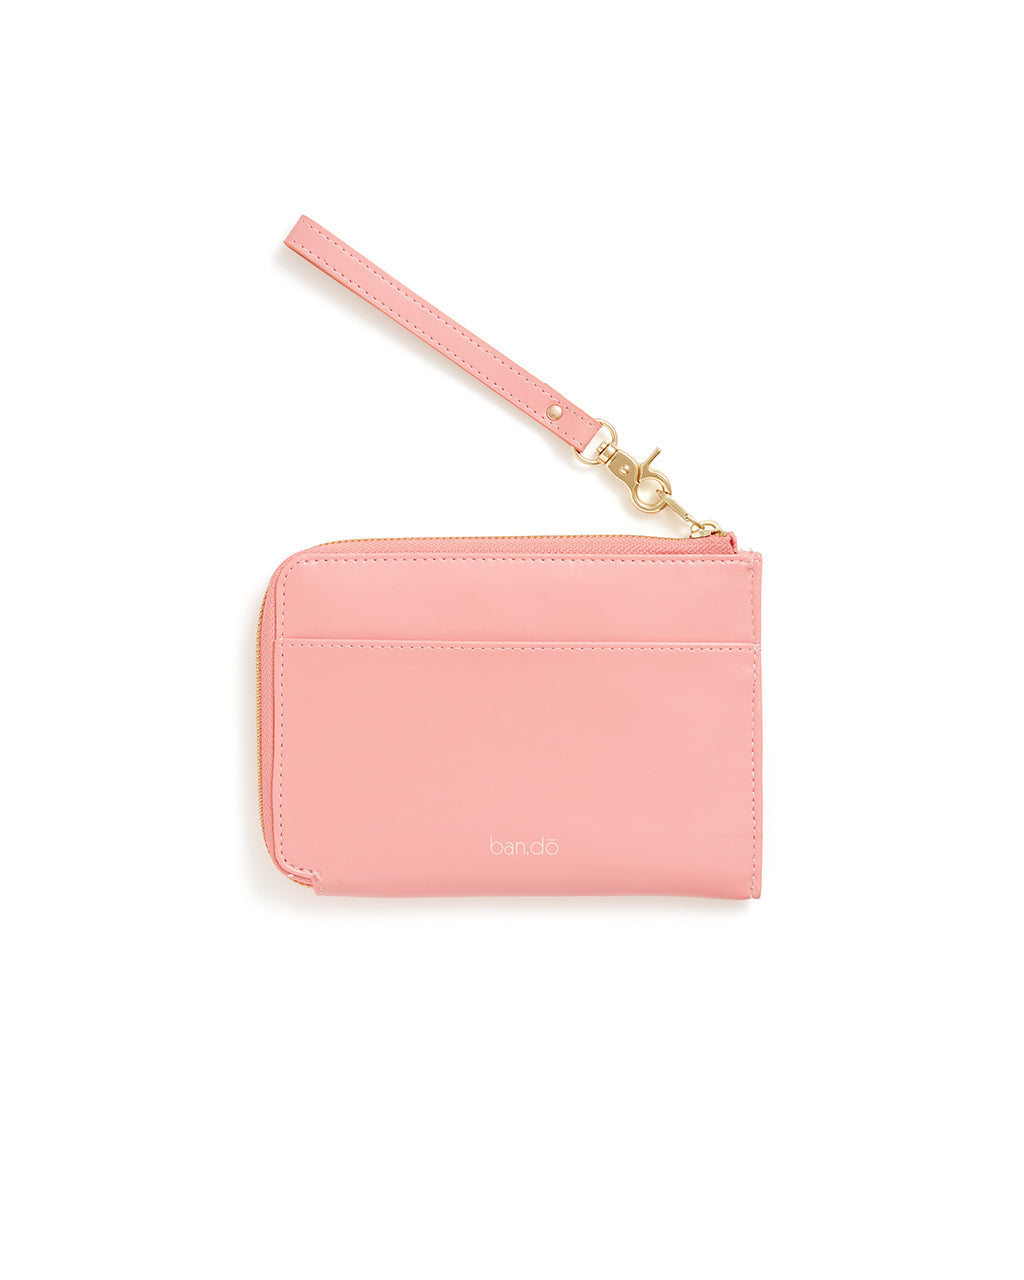 Getaway Travel Clutch - Traveling Party